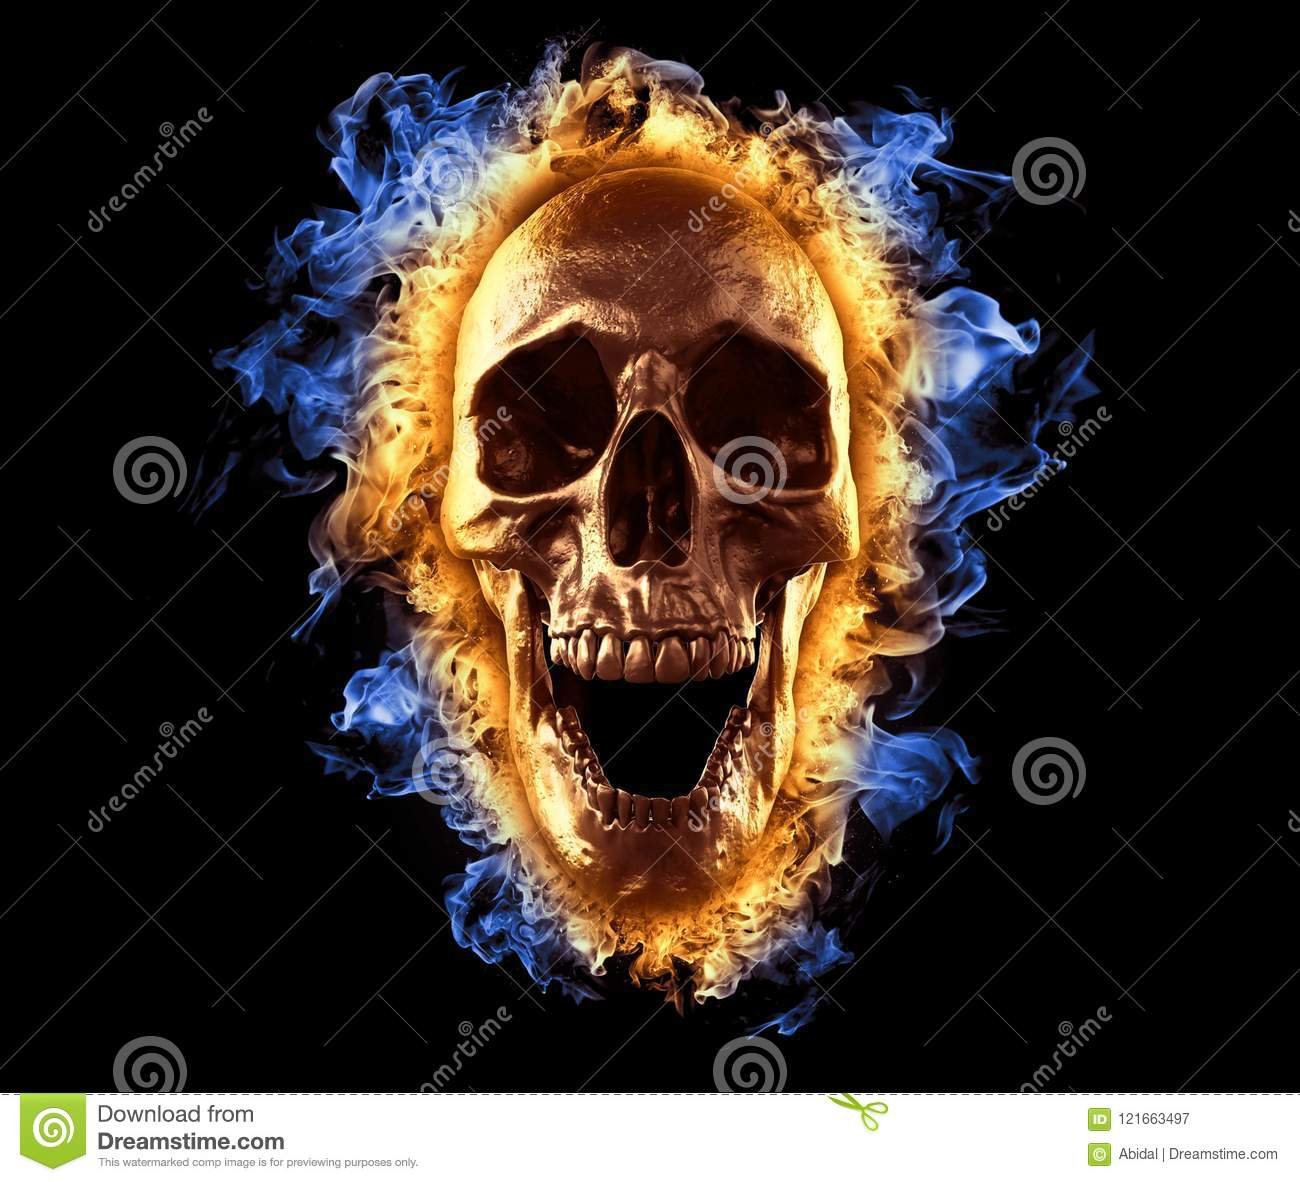 Skull Burning In Blue And Red Fire Wallpaper 3d Rendering